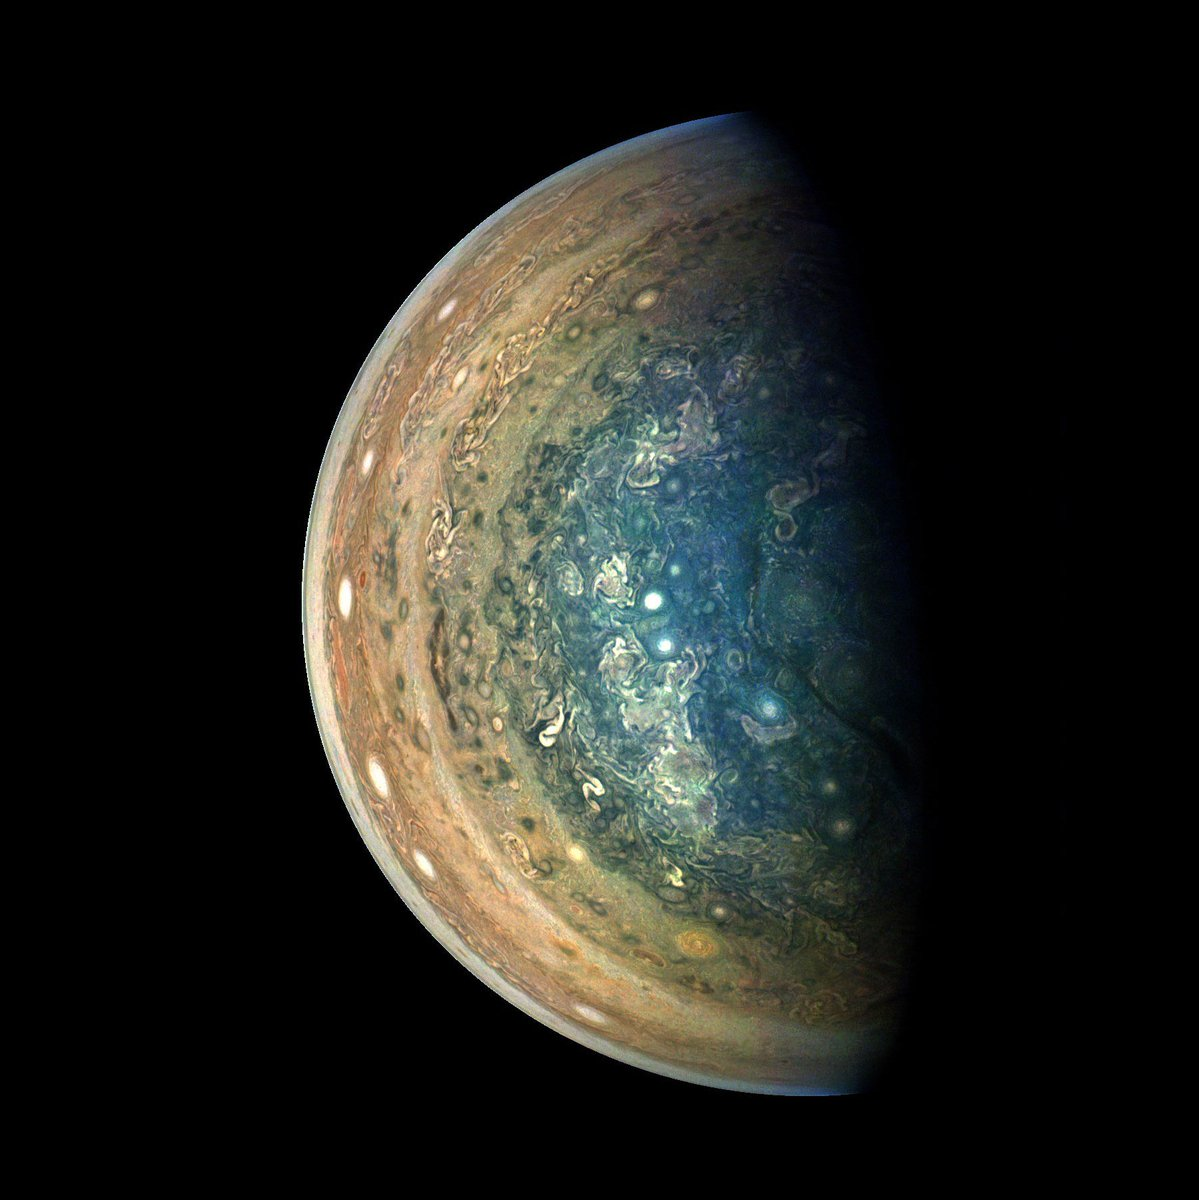 Say hello to Jupiter's south pole! The Juno spacecraft snapped this photo during its tenth orbit around the planet, all while speeding at over 100,000 miles per hour. More incredible space photos here: https://t.co/65dcAOusiB 📸: NASA/JPL-Caltech